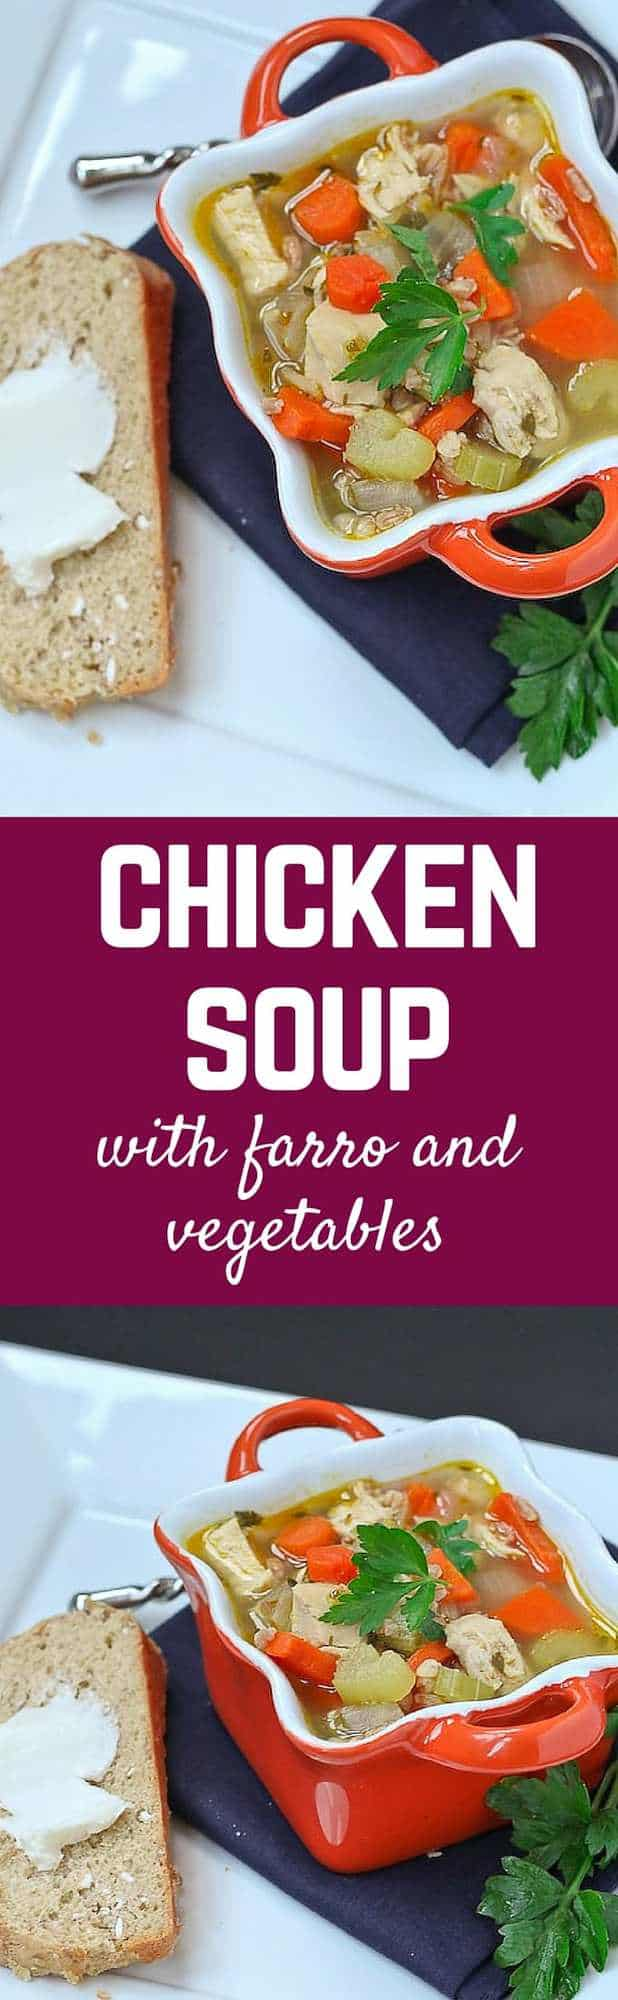 Chicken Soup with Farro and Vegetables - healthy, easy, and delicious. Get the recipe on RachelCooks.com